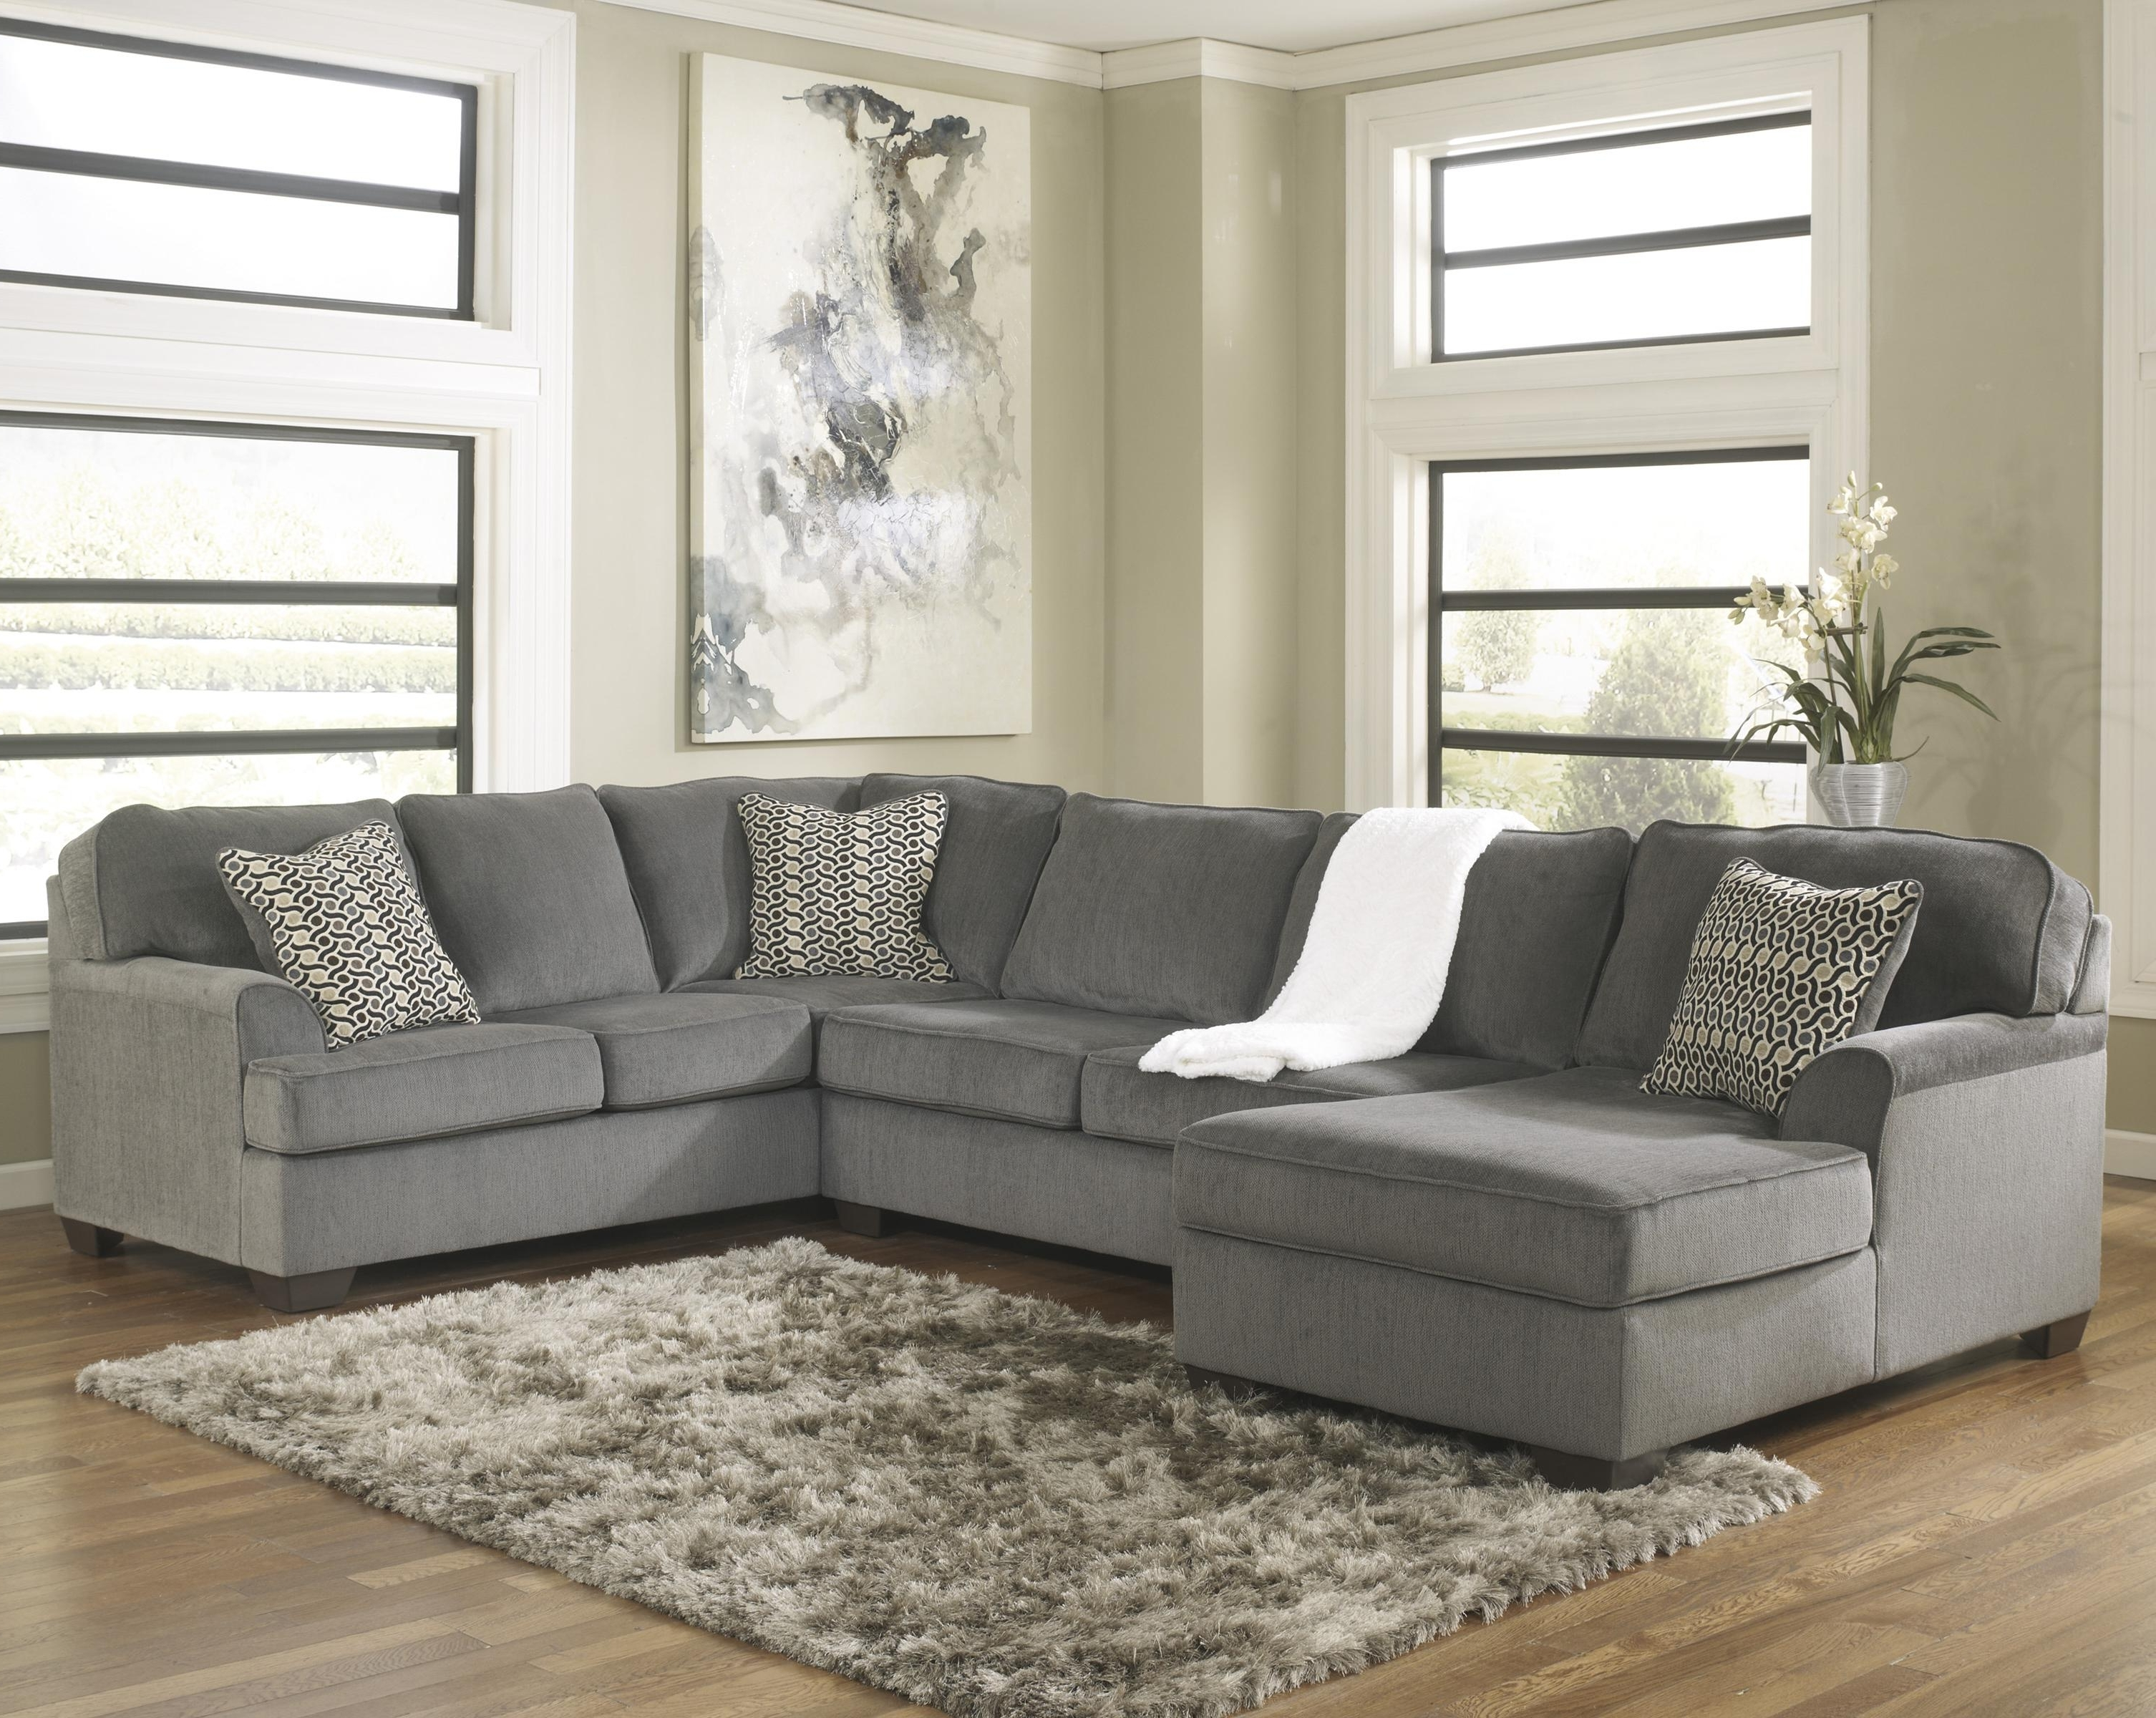 Favorite Ashley Furniture Sectionals With Chaise Pertaining To Ashley Furniture Loric – Smoke Contemporary 3 Piece Sectional With (View 9 of 15)